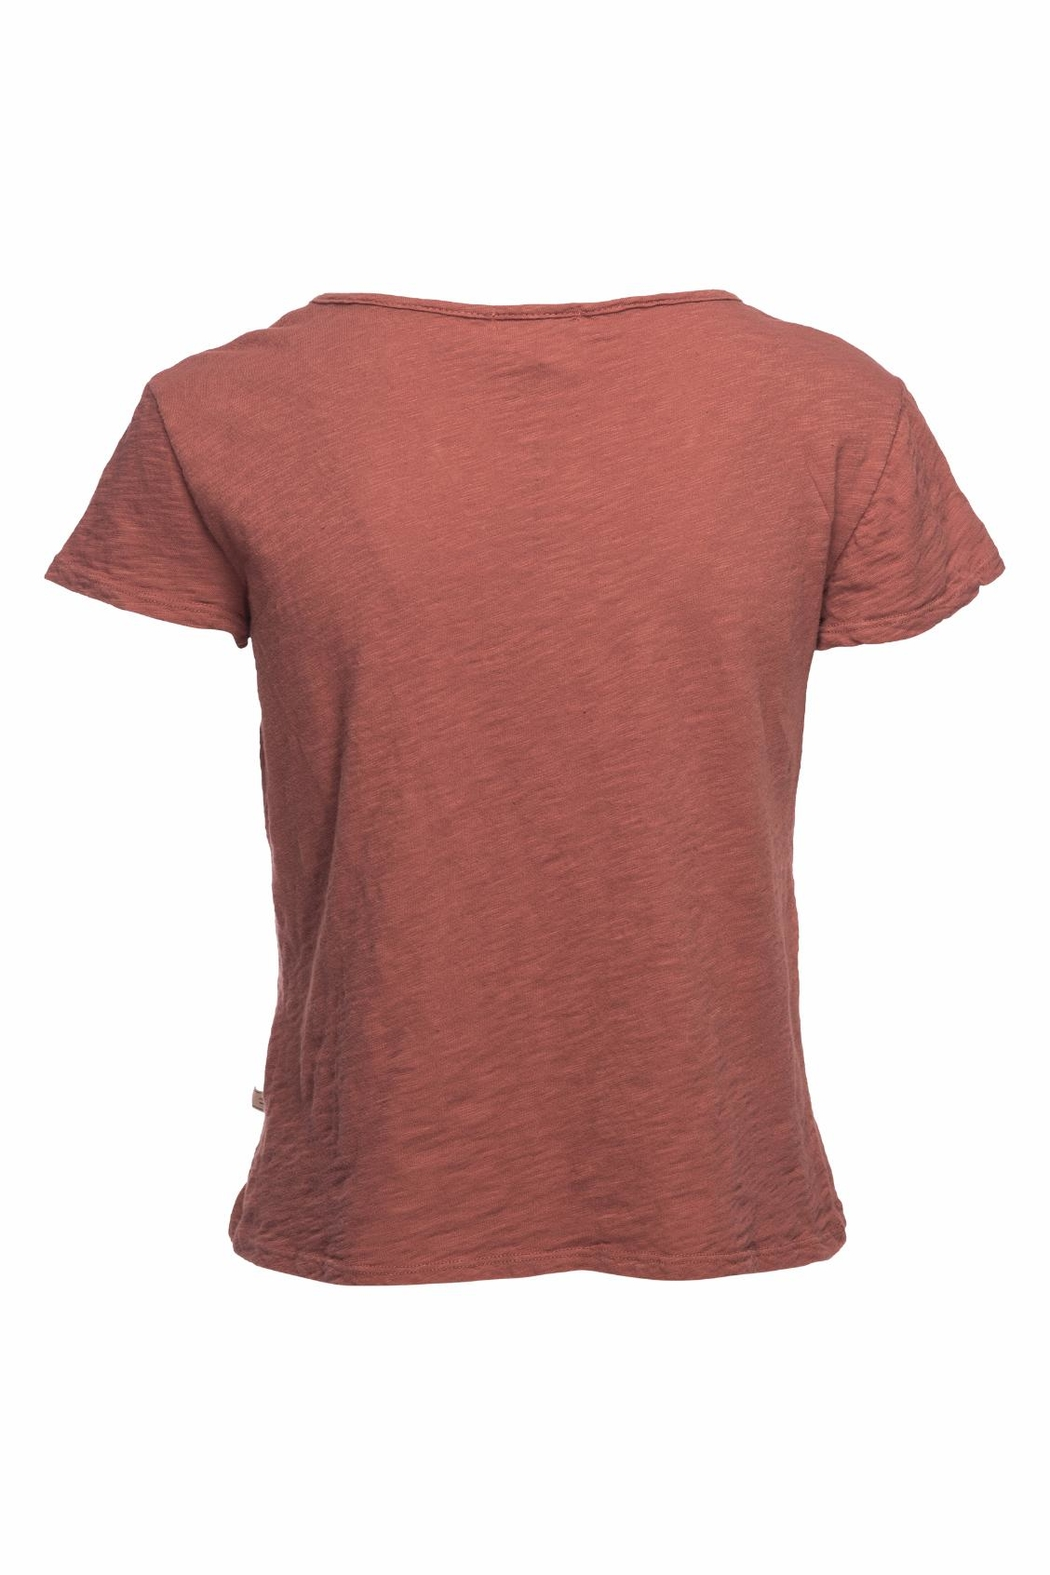 NYTT Rusty Distressed Tee - Front Full Image